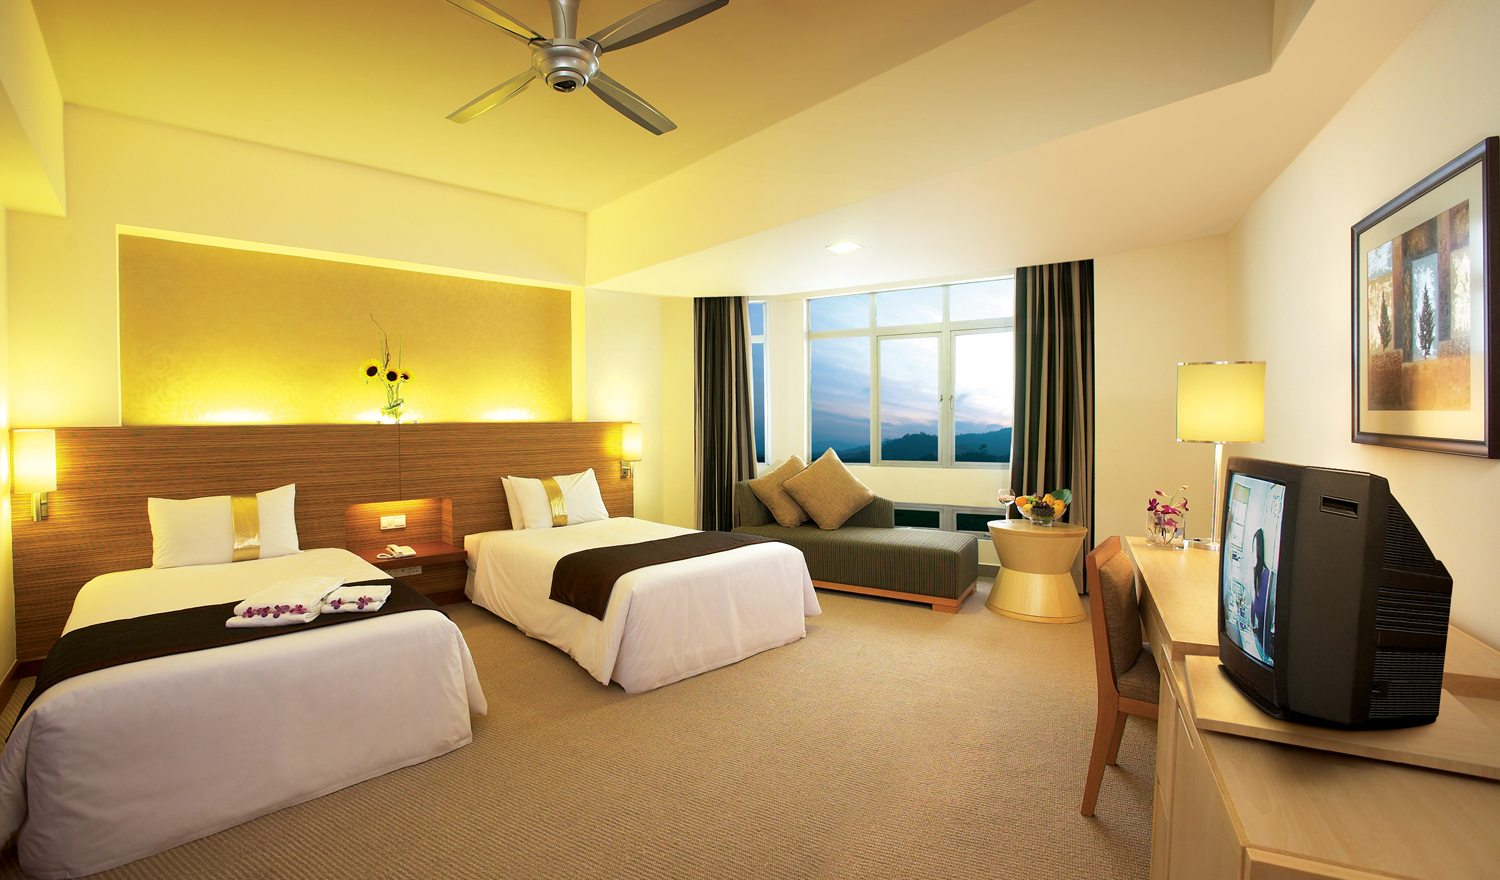 The Bedroom Montgomery Al 10 Reasons Why Every Malaysian Should Visit Genting